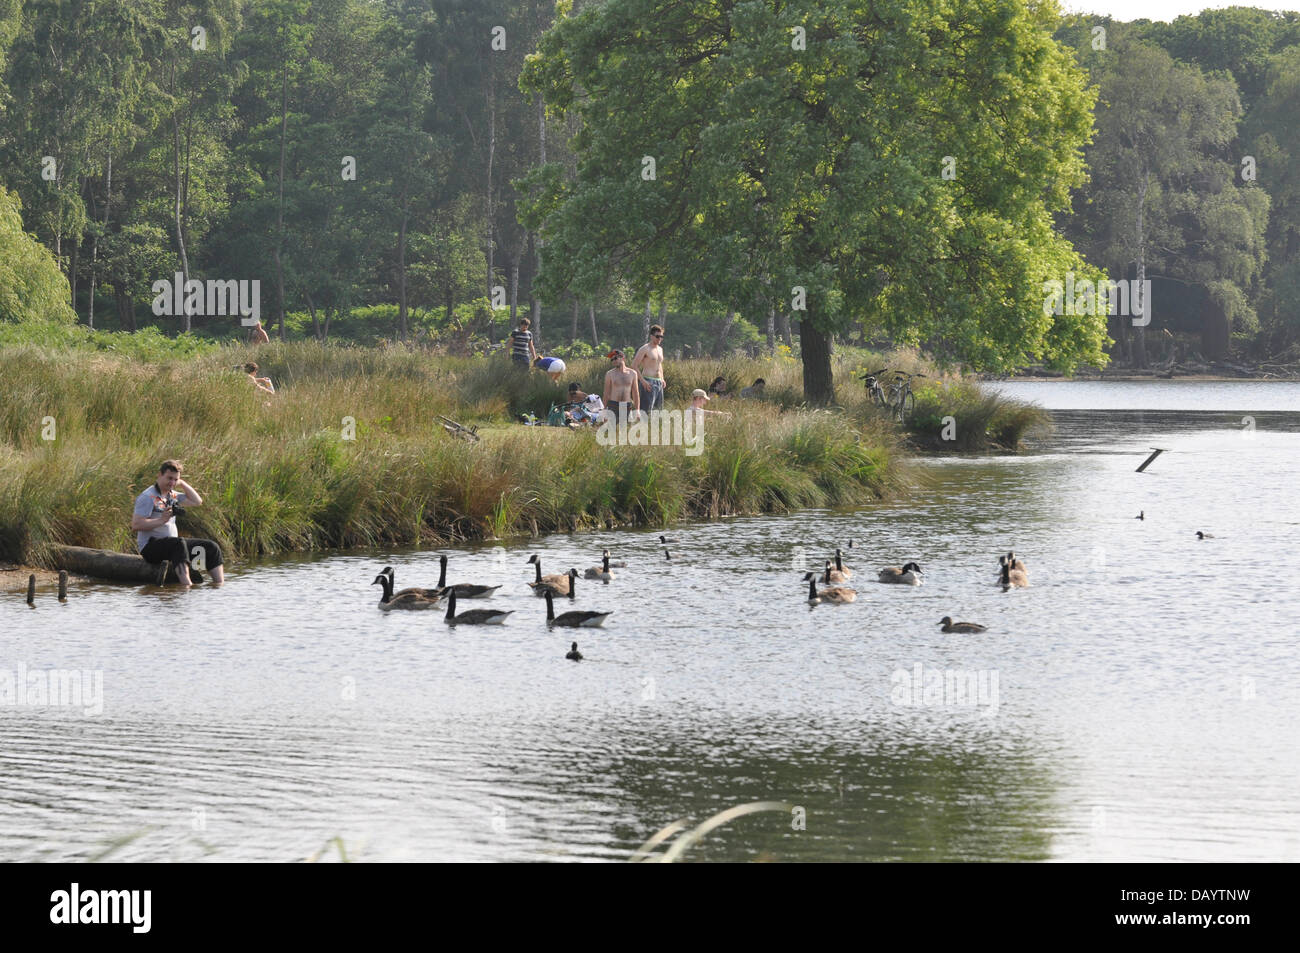 London, UK, Sunday 21st July 2013. As the heat wave continues across the whole of the UK, Londoners in the South - Stock Image